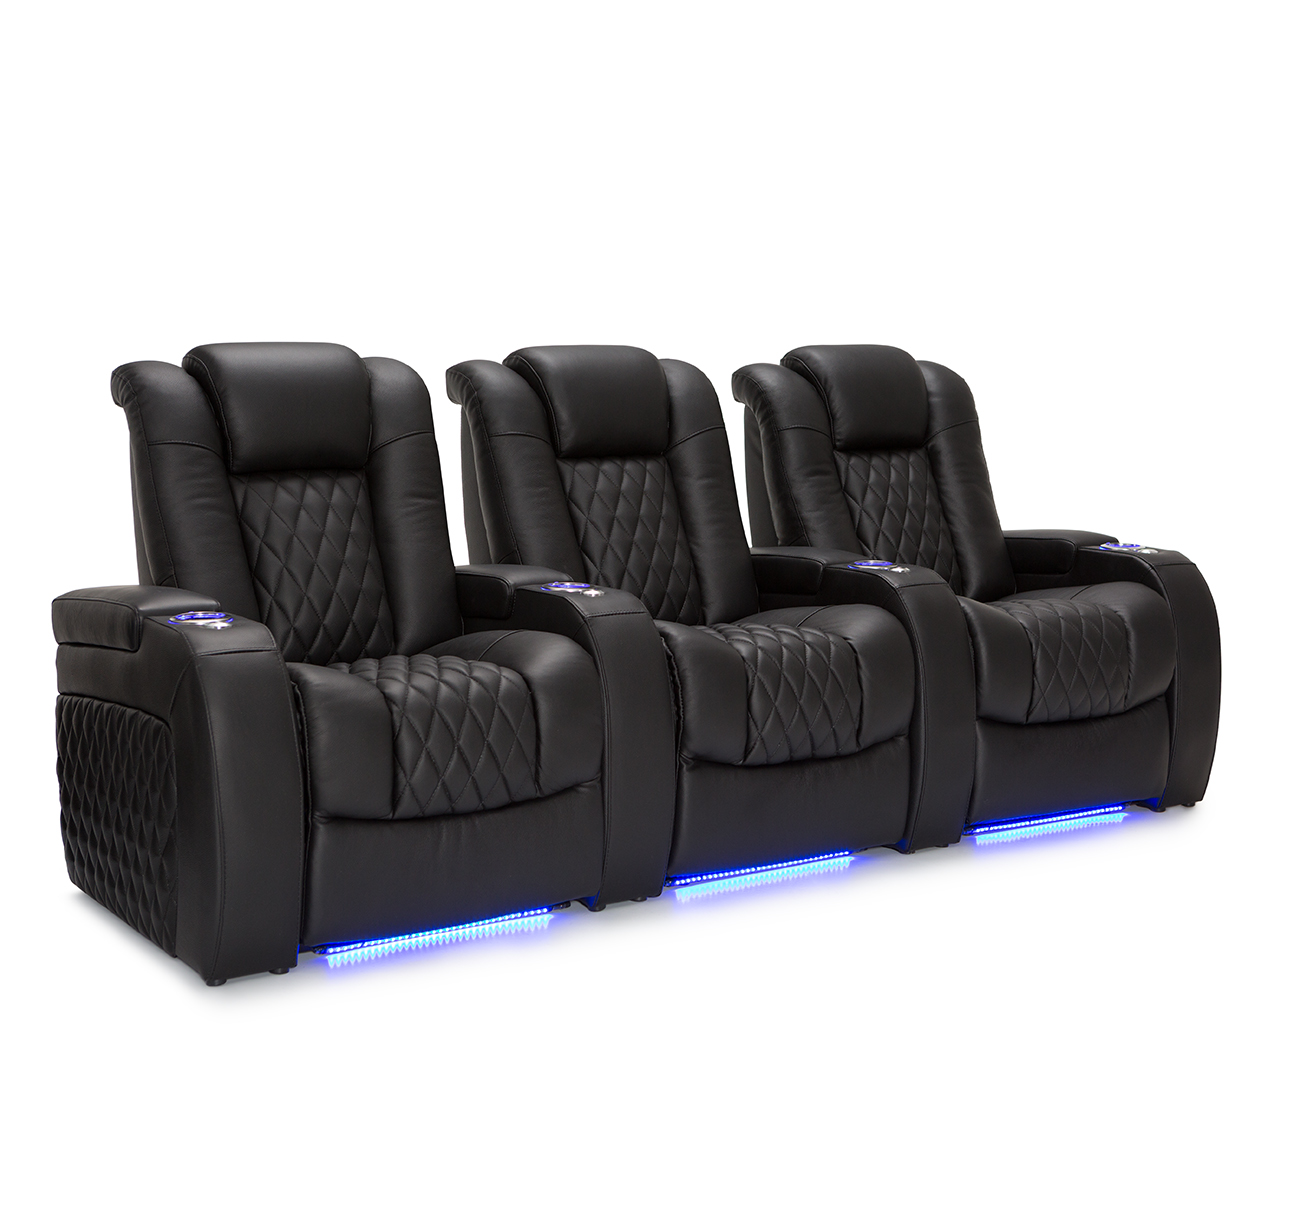 home theater chairs canada dining set seating stargate cinema lane furnishings 56 products palliser